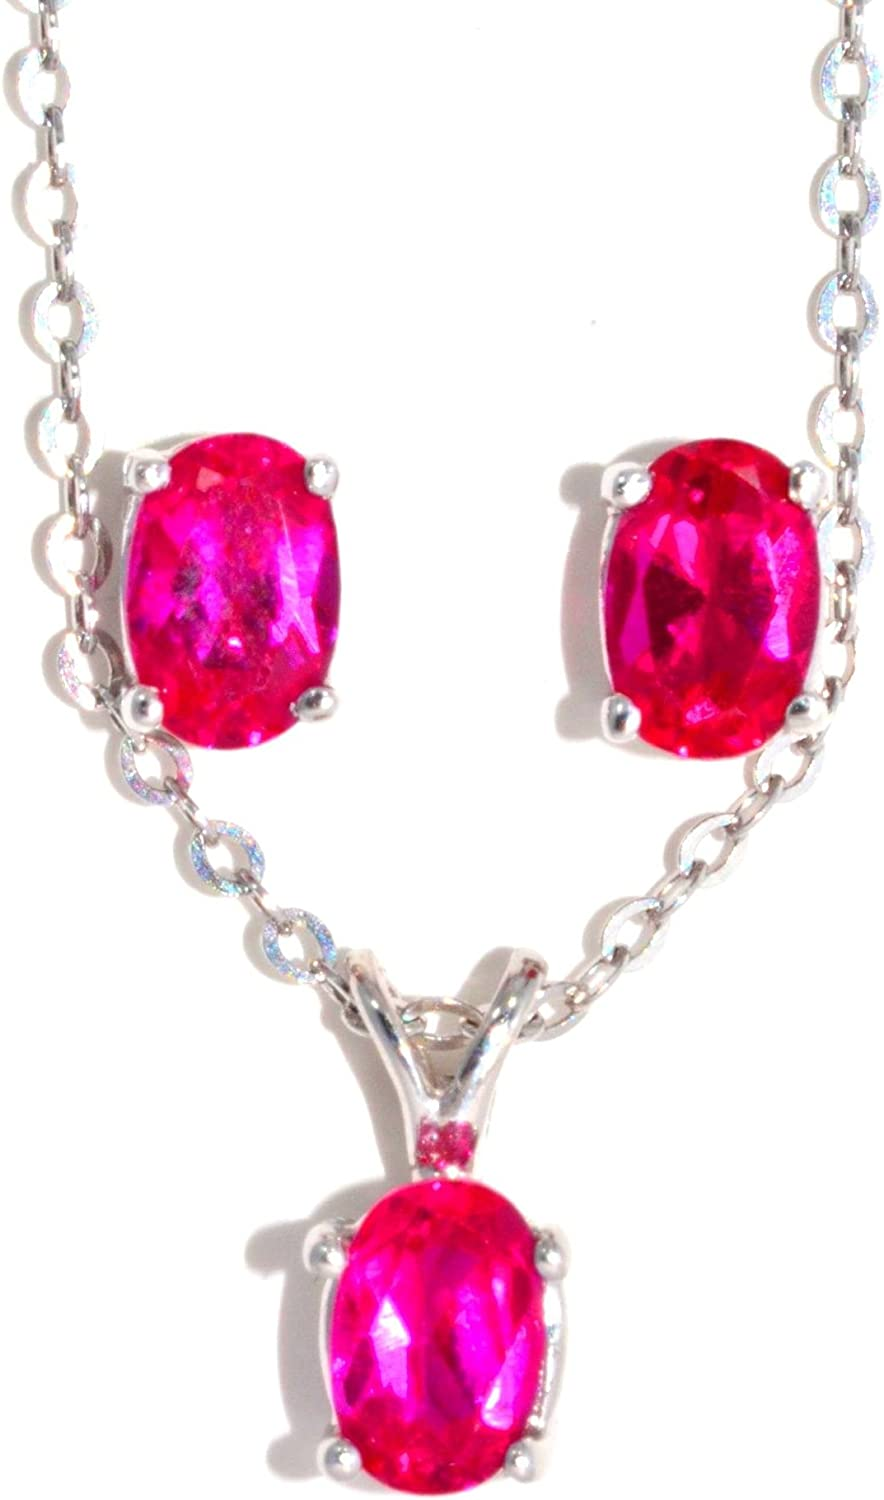 1.5 Carat Created Ruby Oval Stud Earrings /& Pendant Set .925 Sterling Silver Rhodium Finish